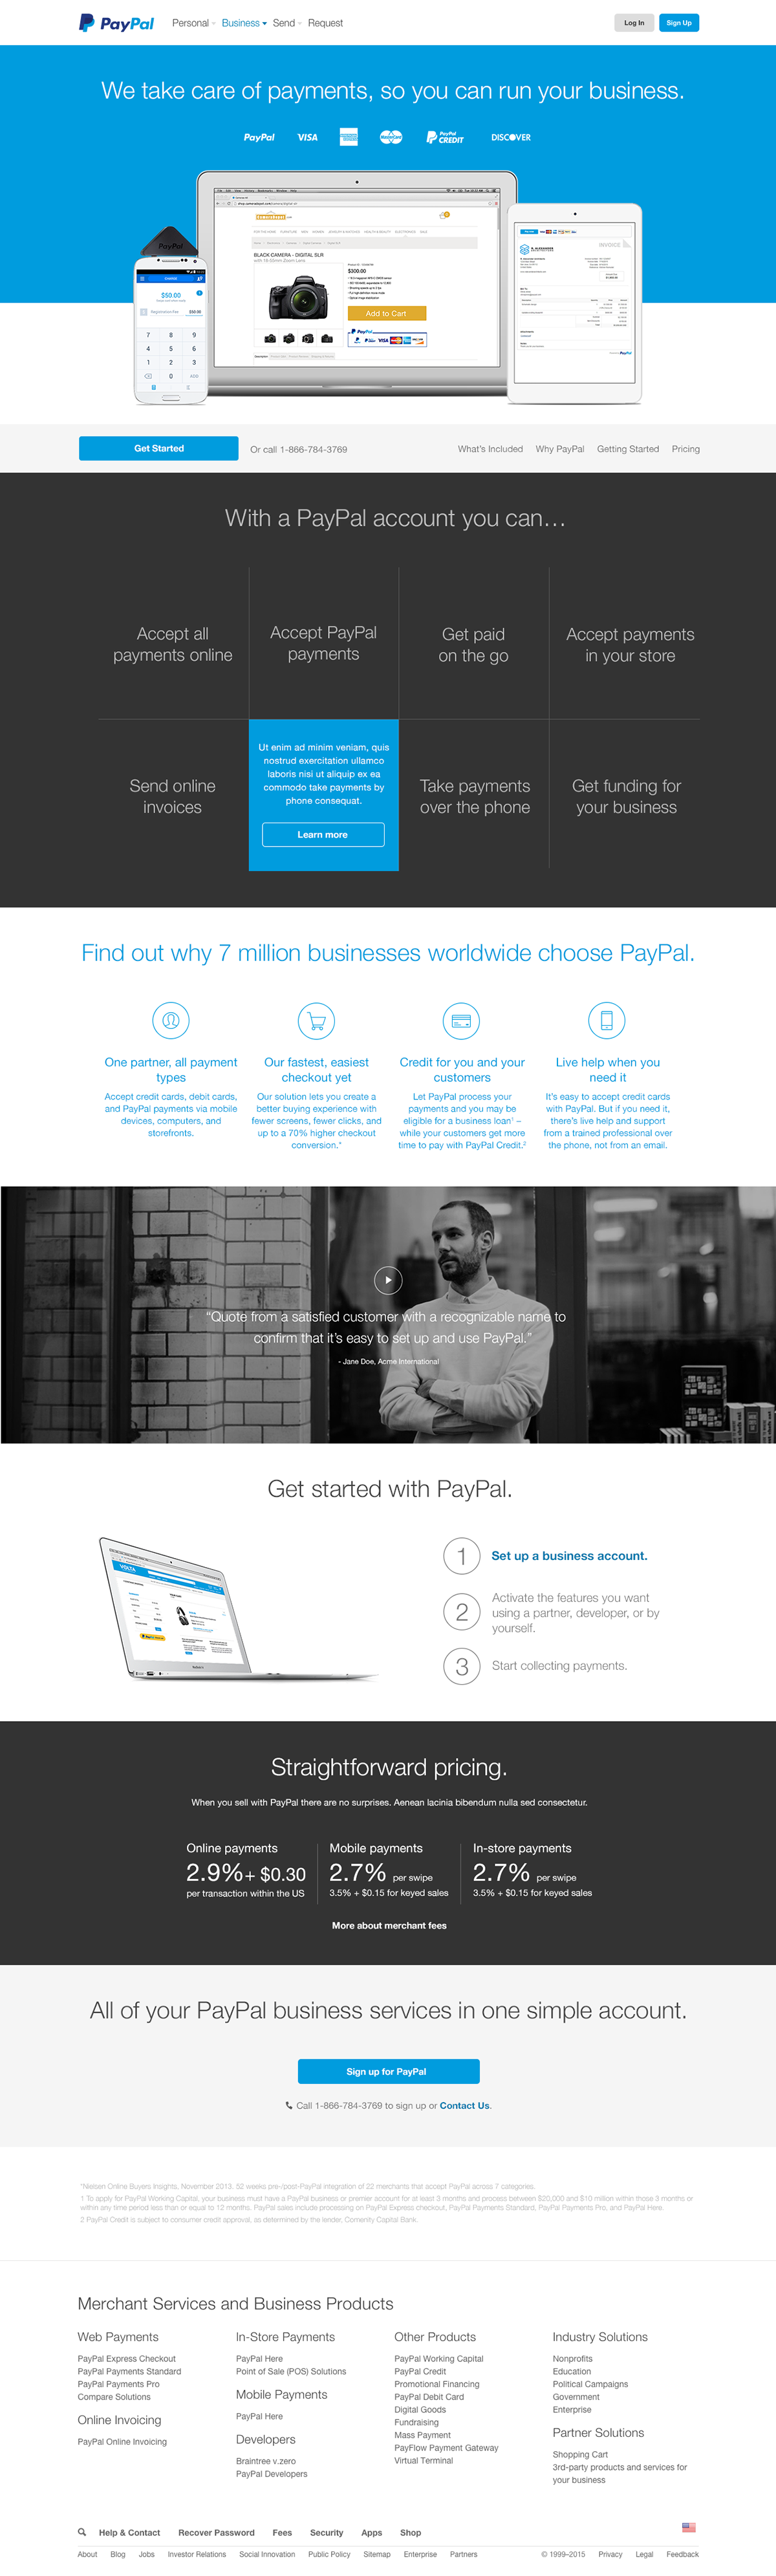 Lovely Activate Paypal Business Debit Card Images - Business Card ...